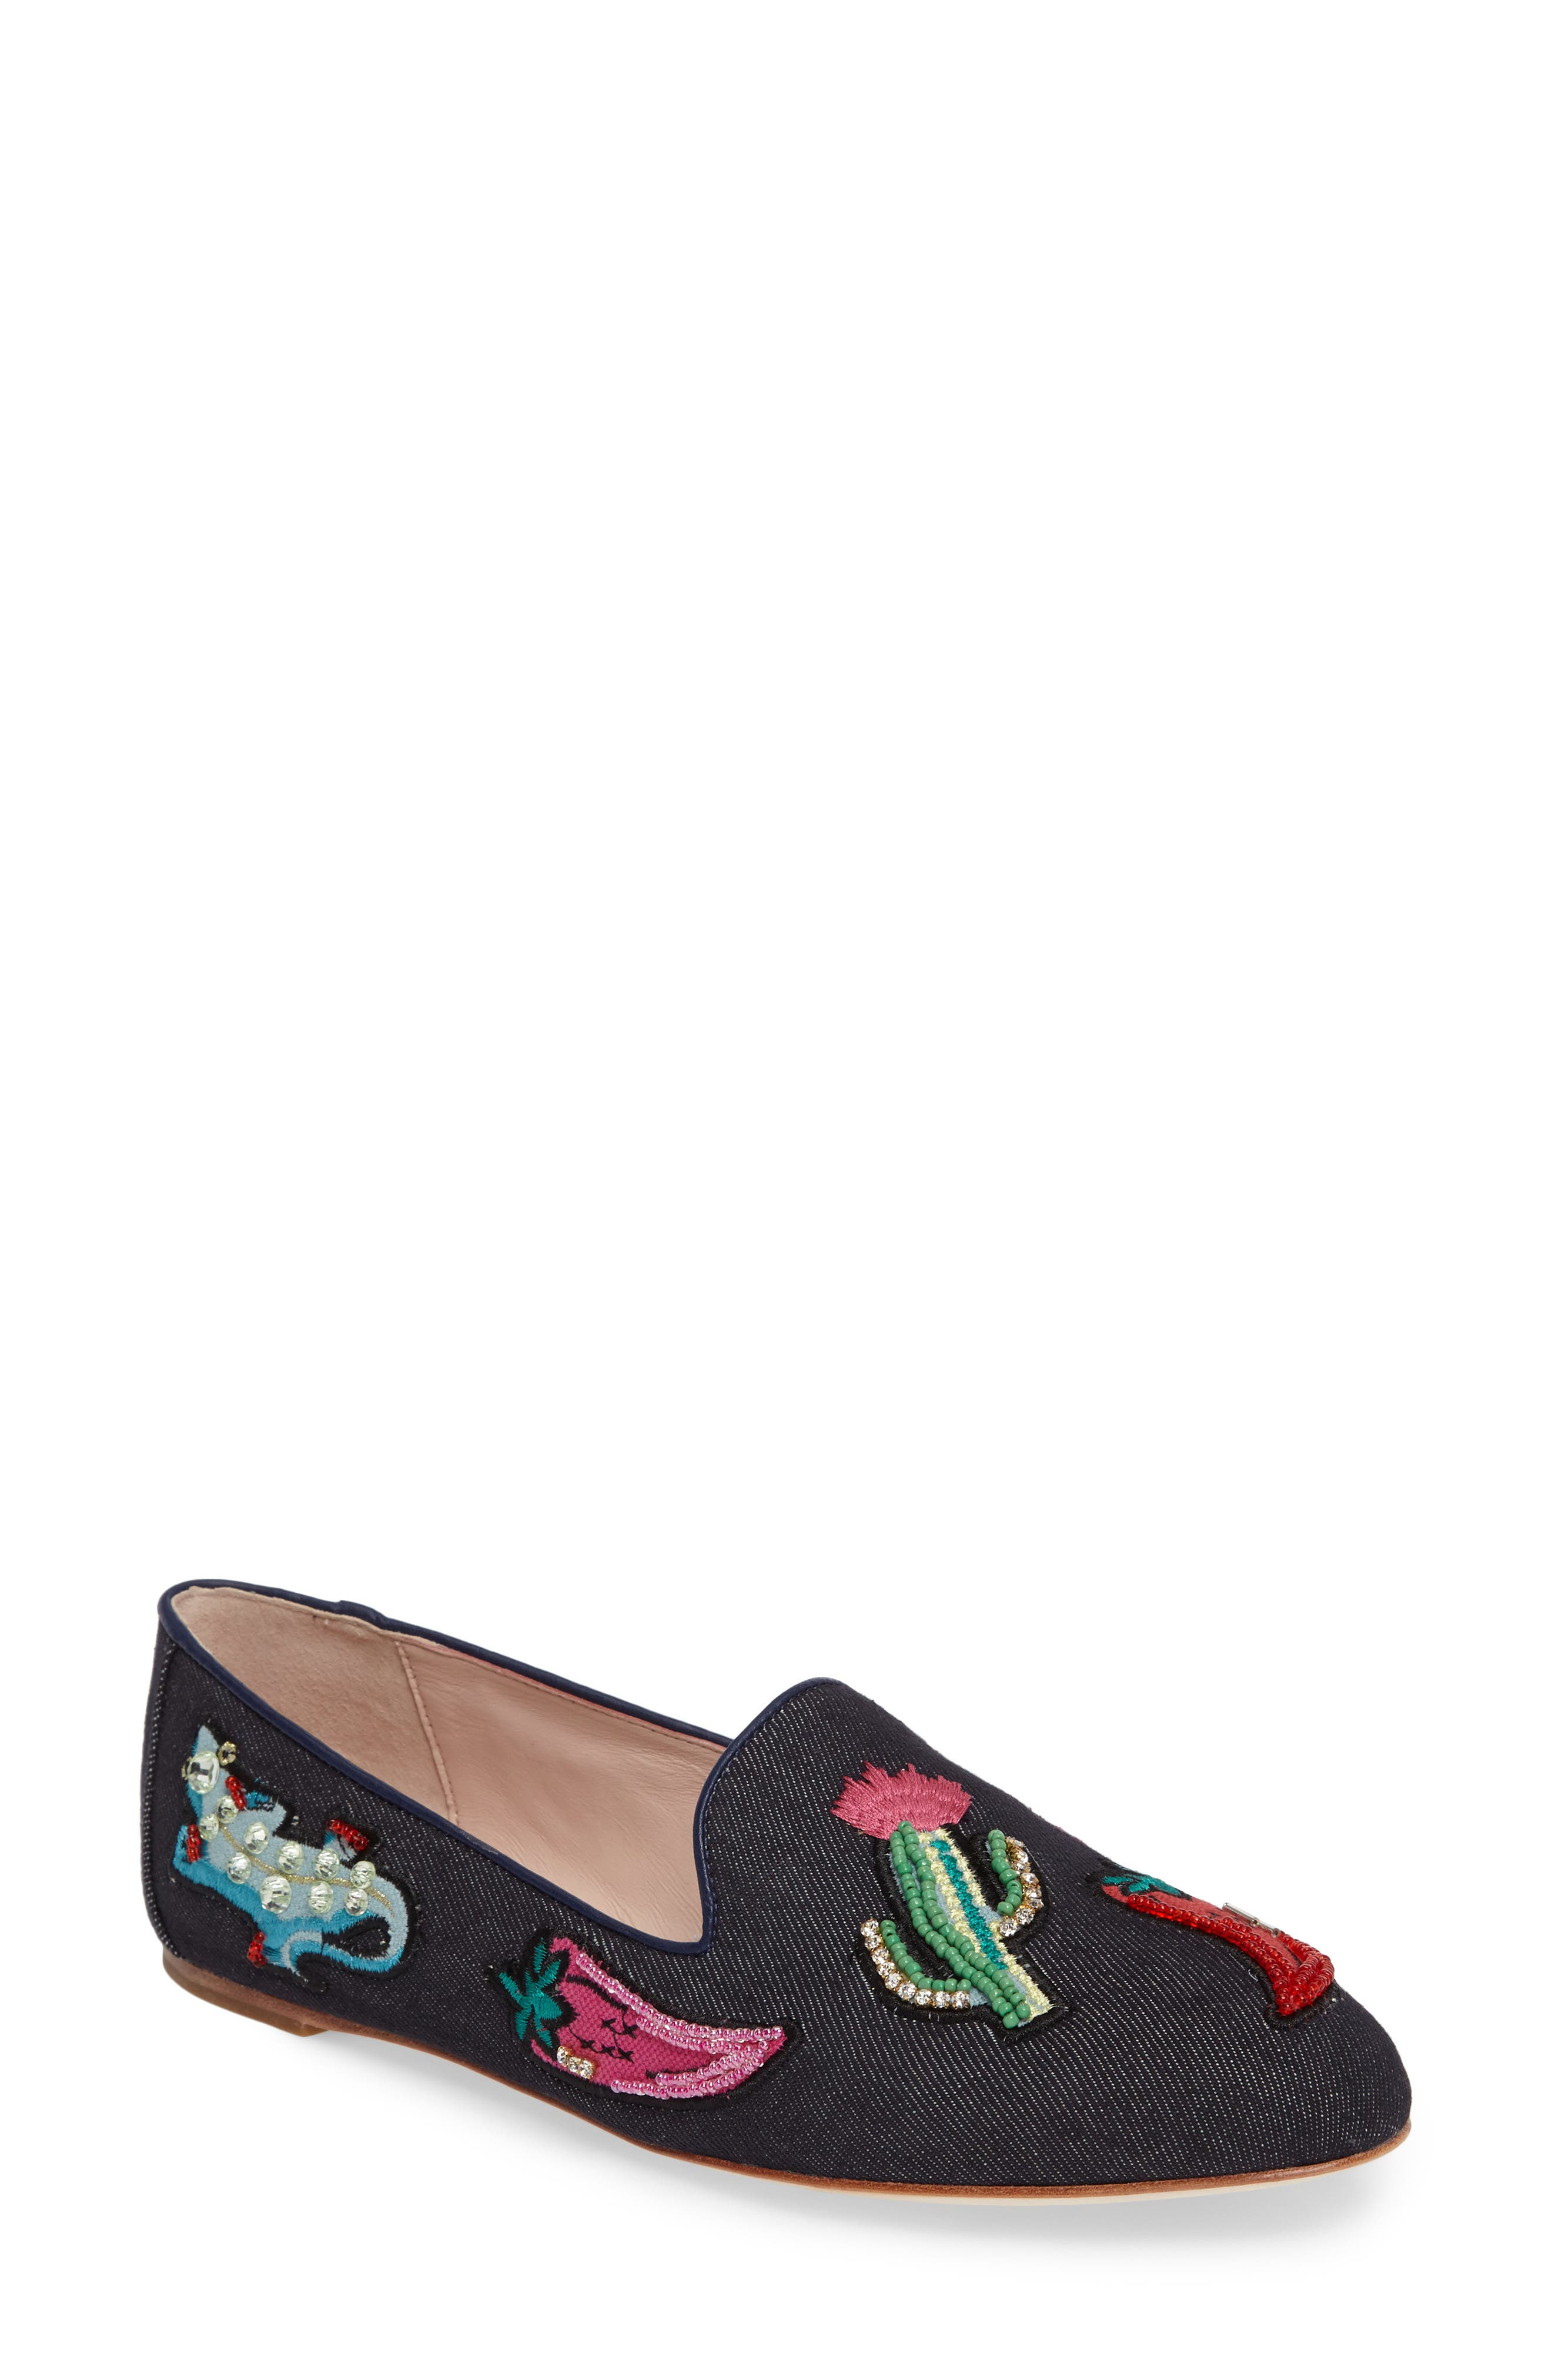 kate spade new york saville embroidered loafer (Women)